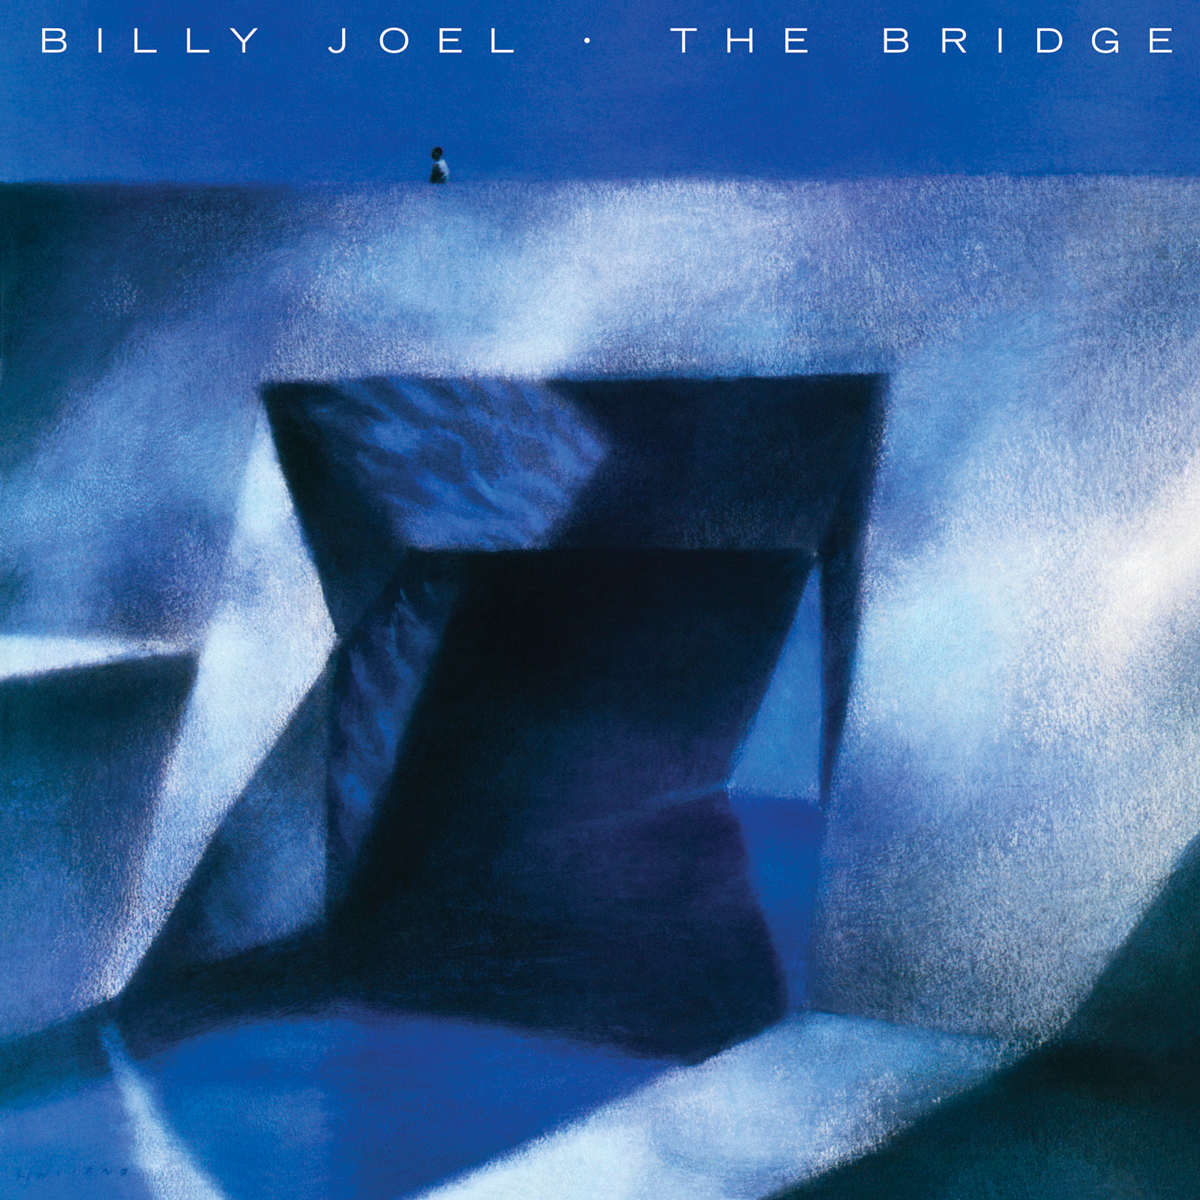 Billy Joel - The Bridge 30th Anniversary Edition (180 Gram Audiophile Translucent Blue Vinyl/Limited Edition/Gatefold Cover)